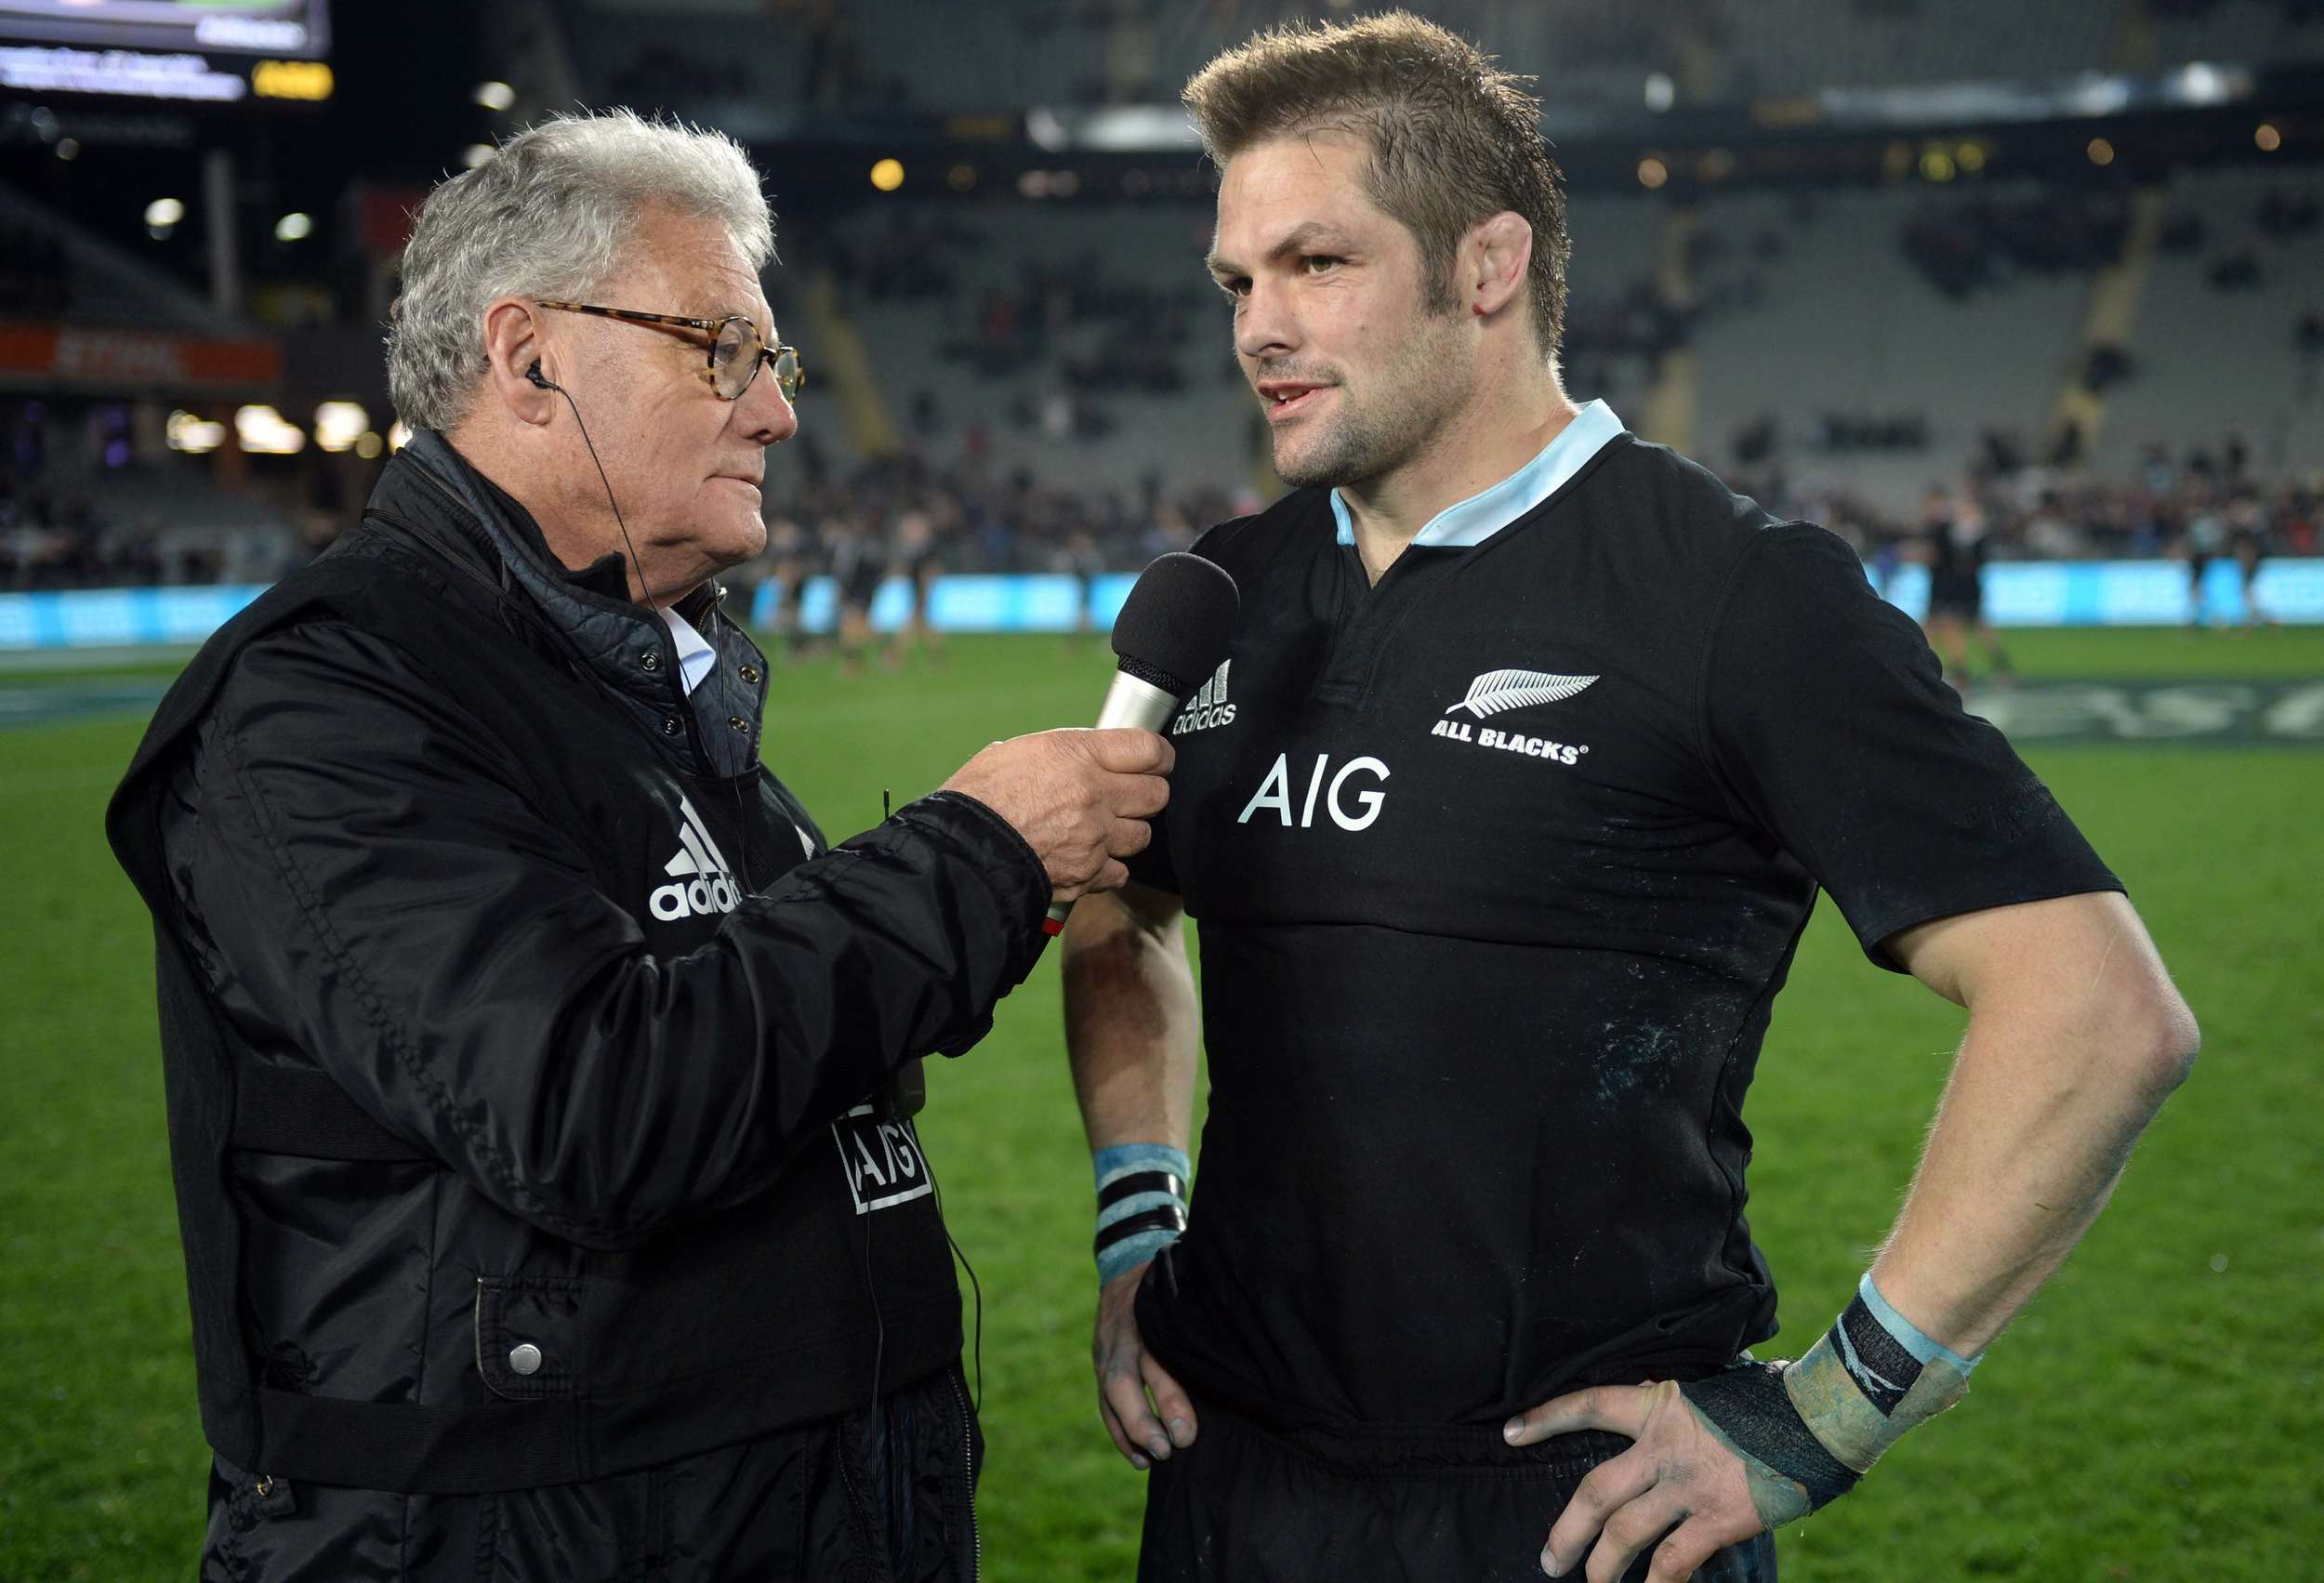 Peter Montgomery interviews All Black Captain Richie after has final test match